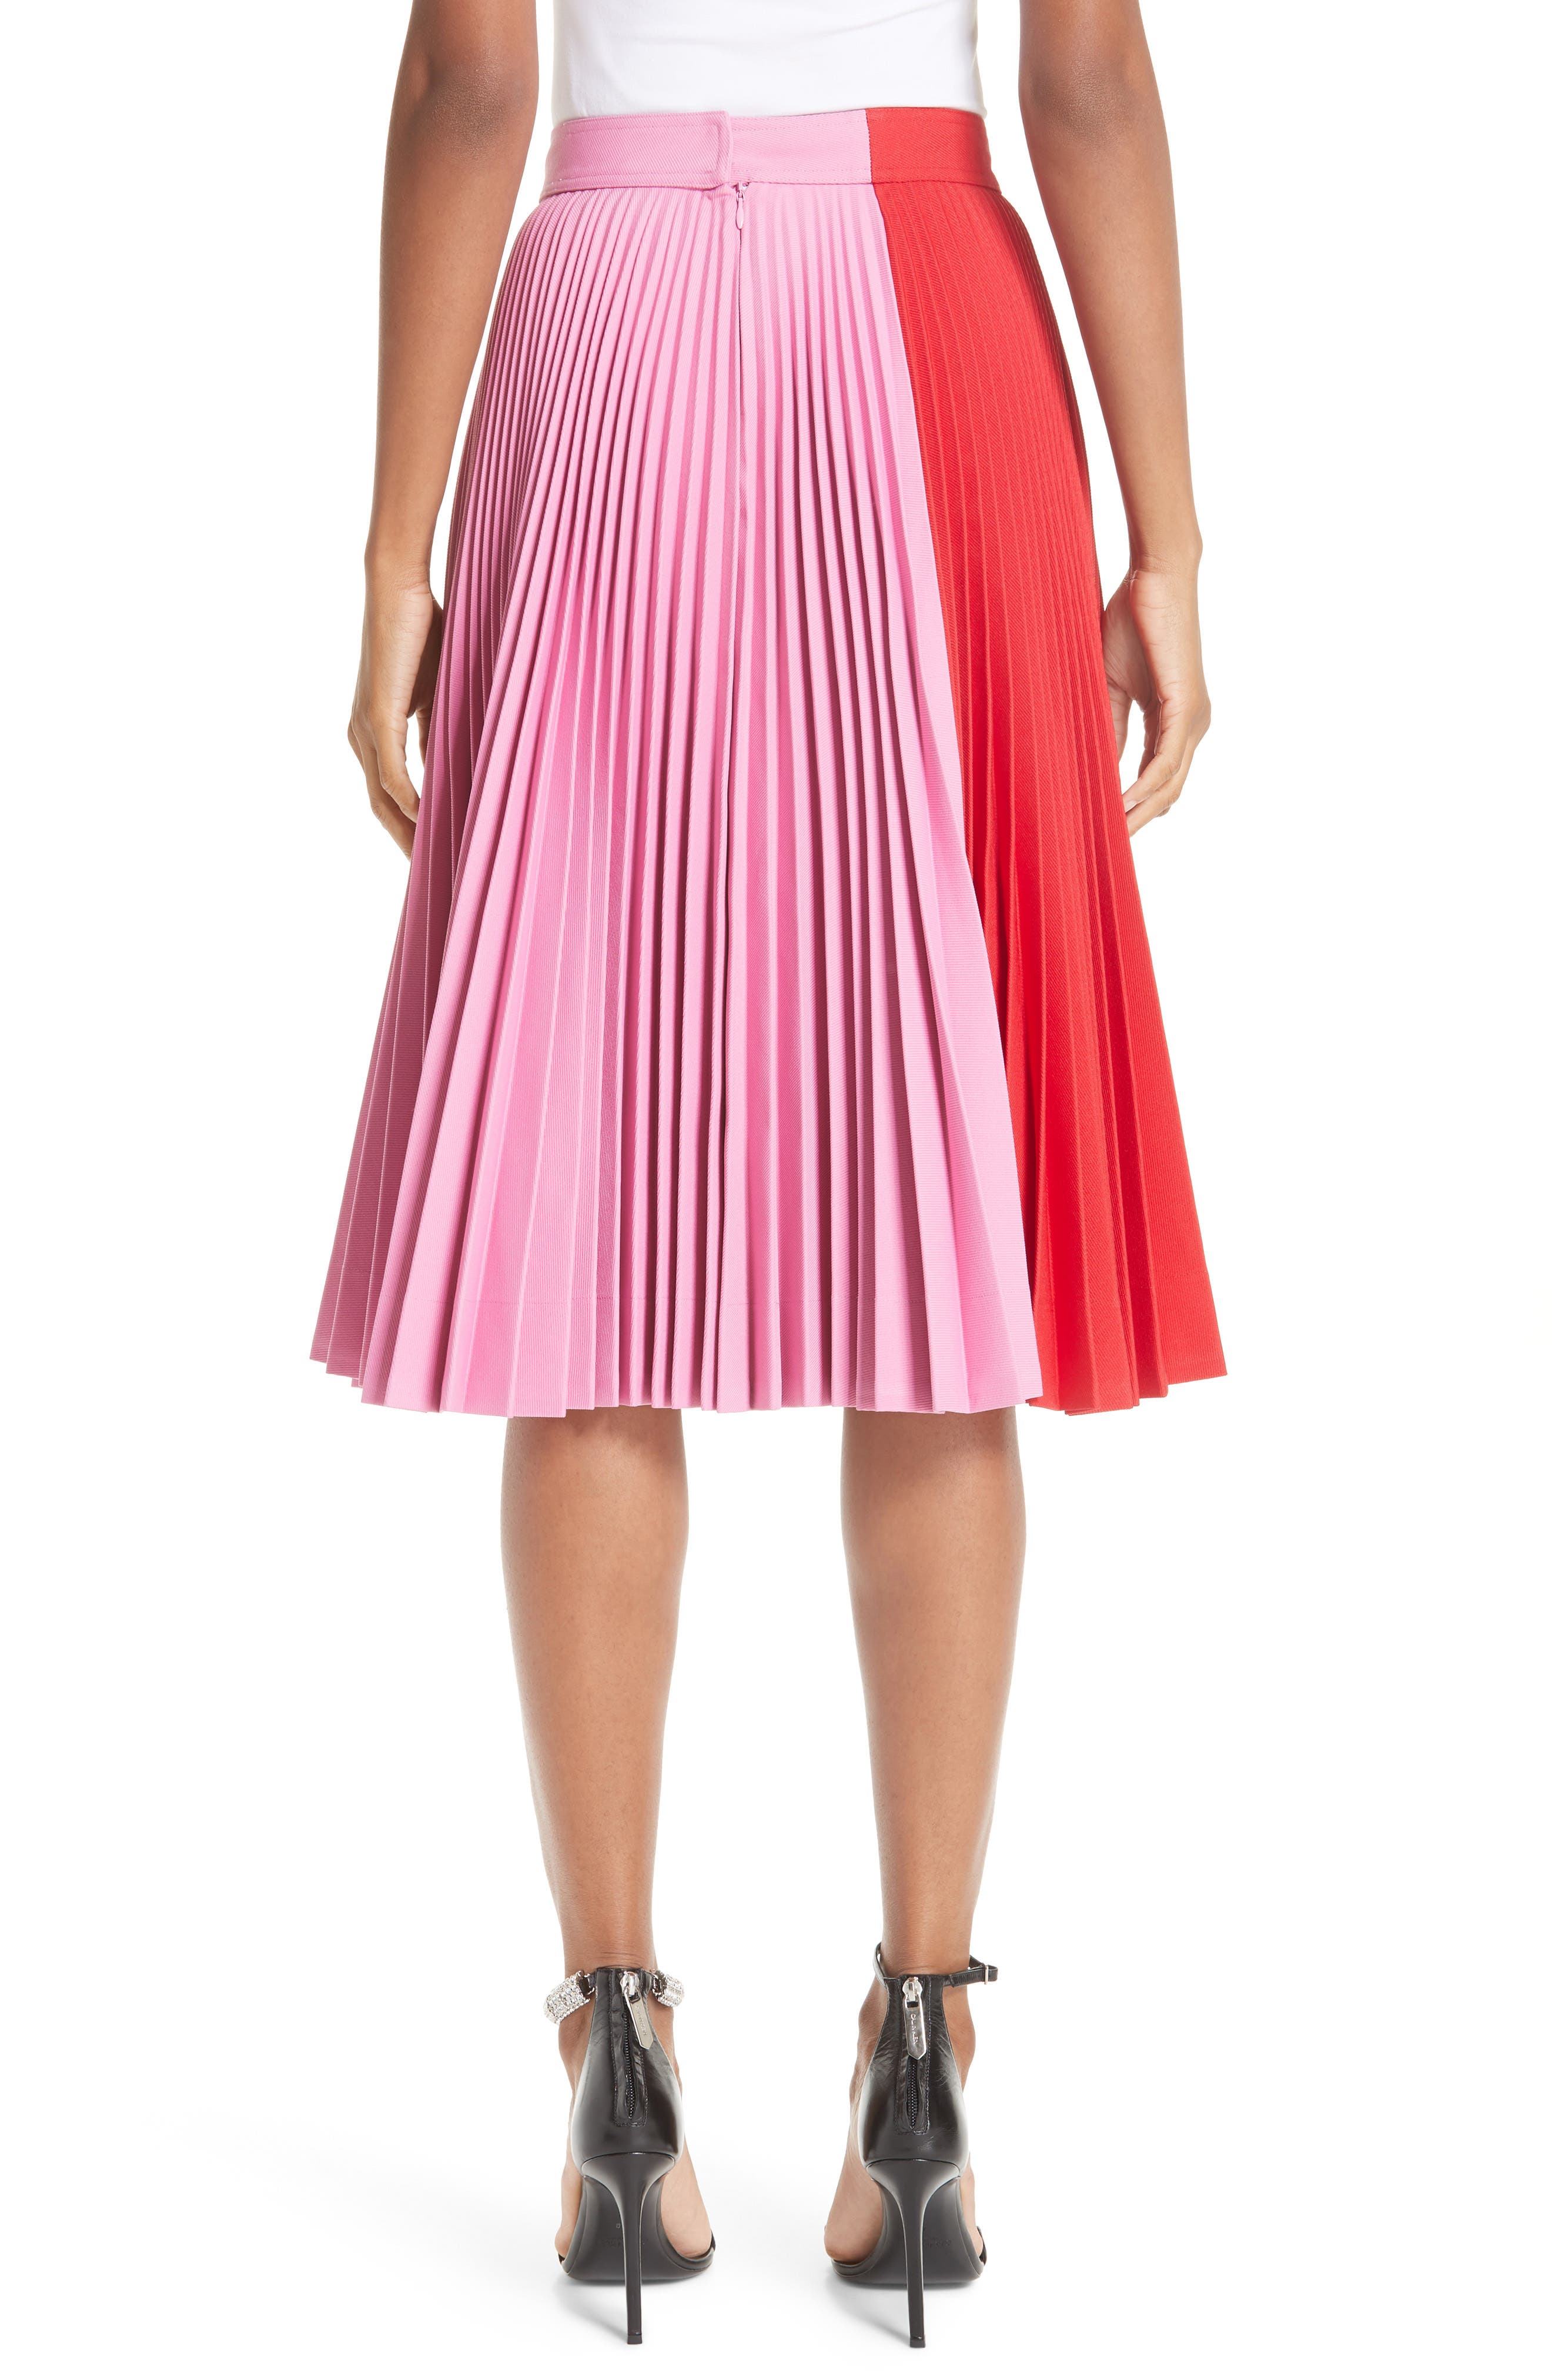 CALVIN KLEIN 205W39NYC, Bicolor Pleated Skirt, Alternate thumbnail 2, color, SCARLET ANEMONE